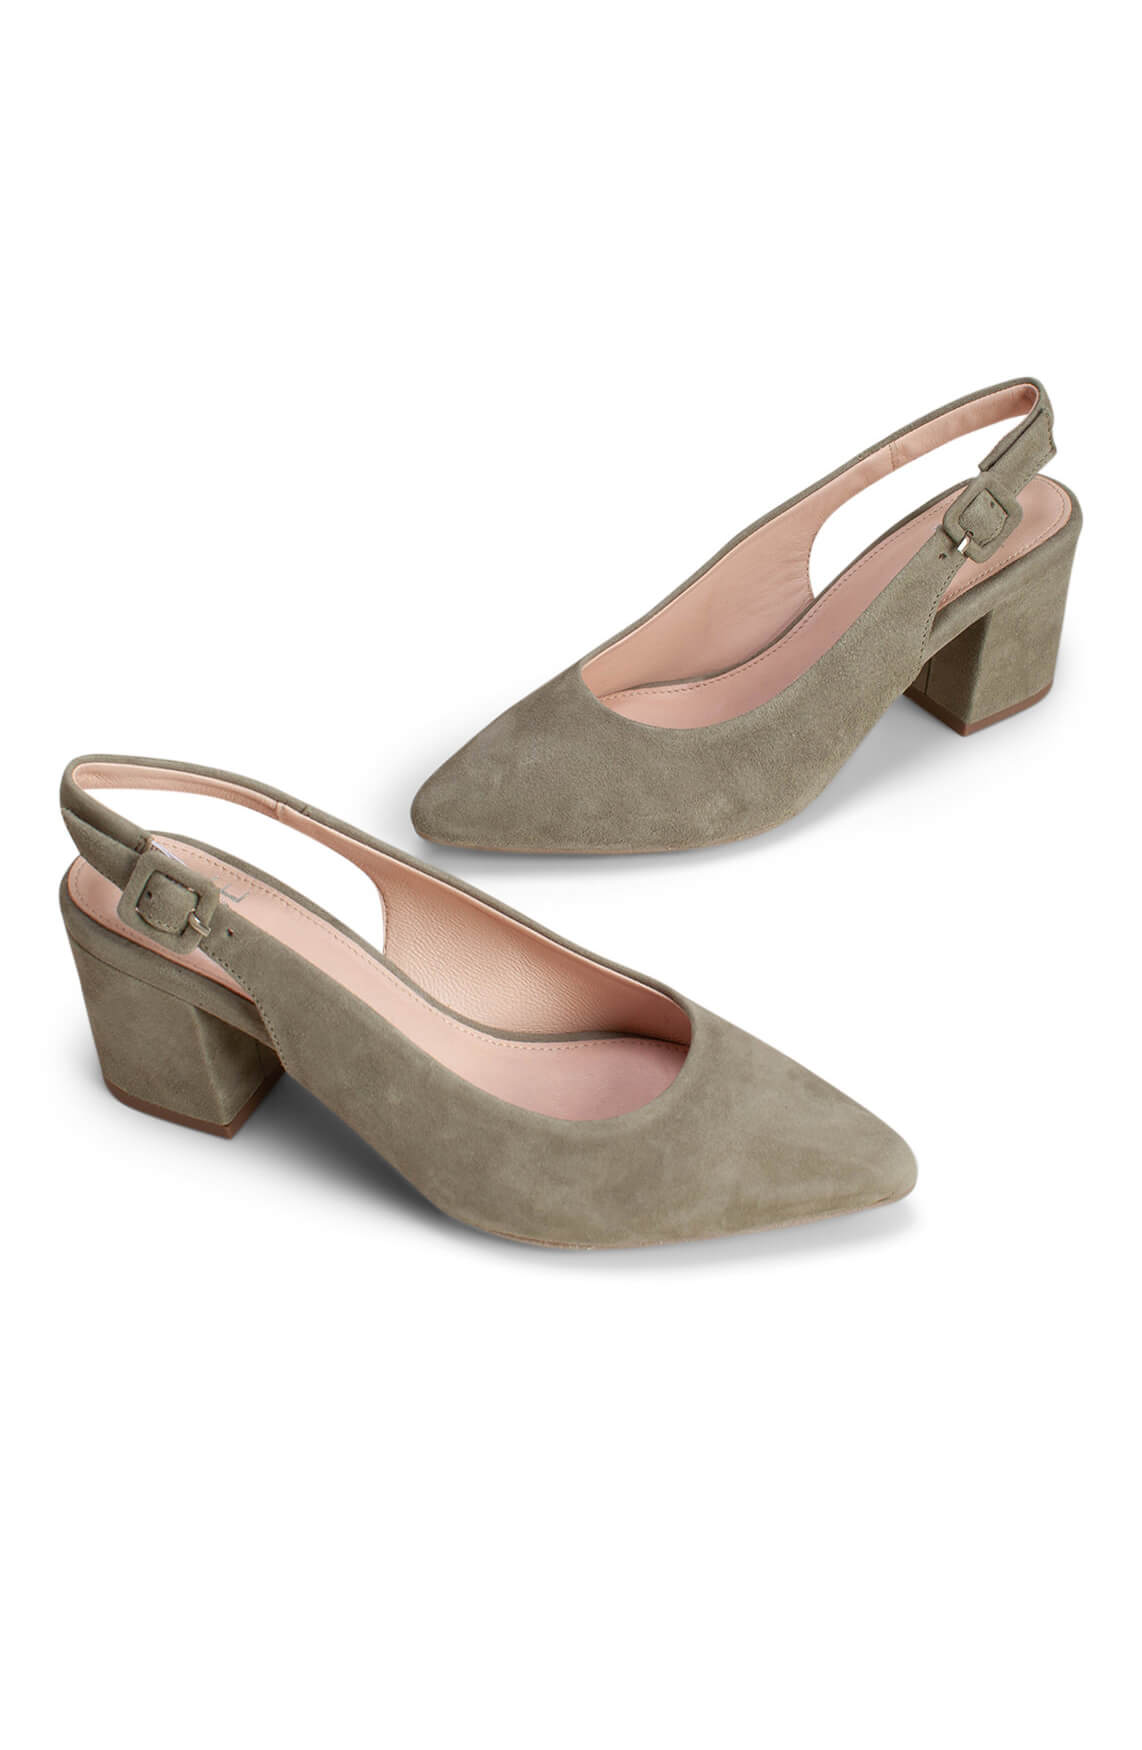 Noi Due Dames Slingback pump groen